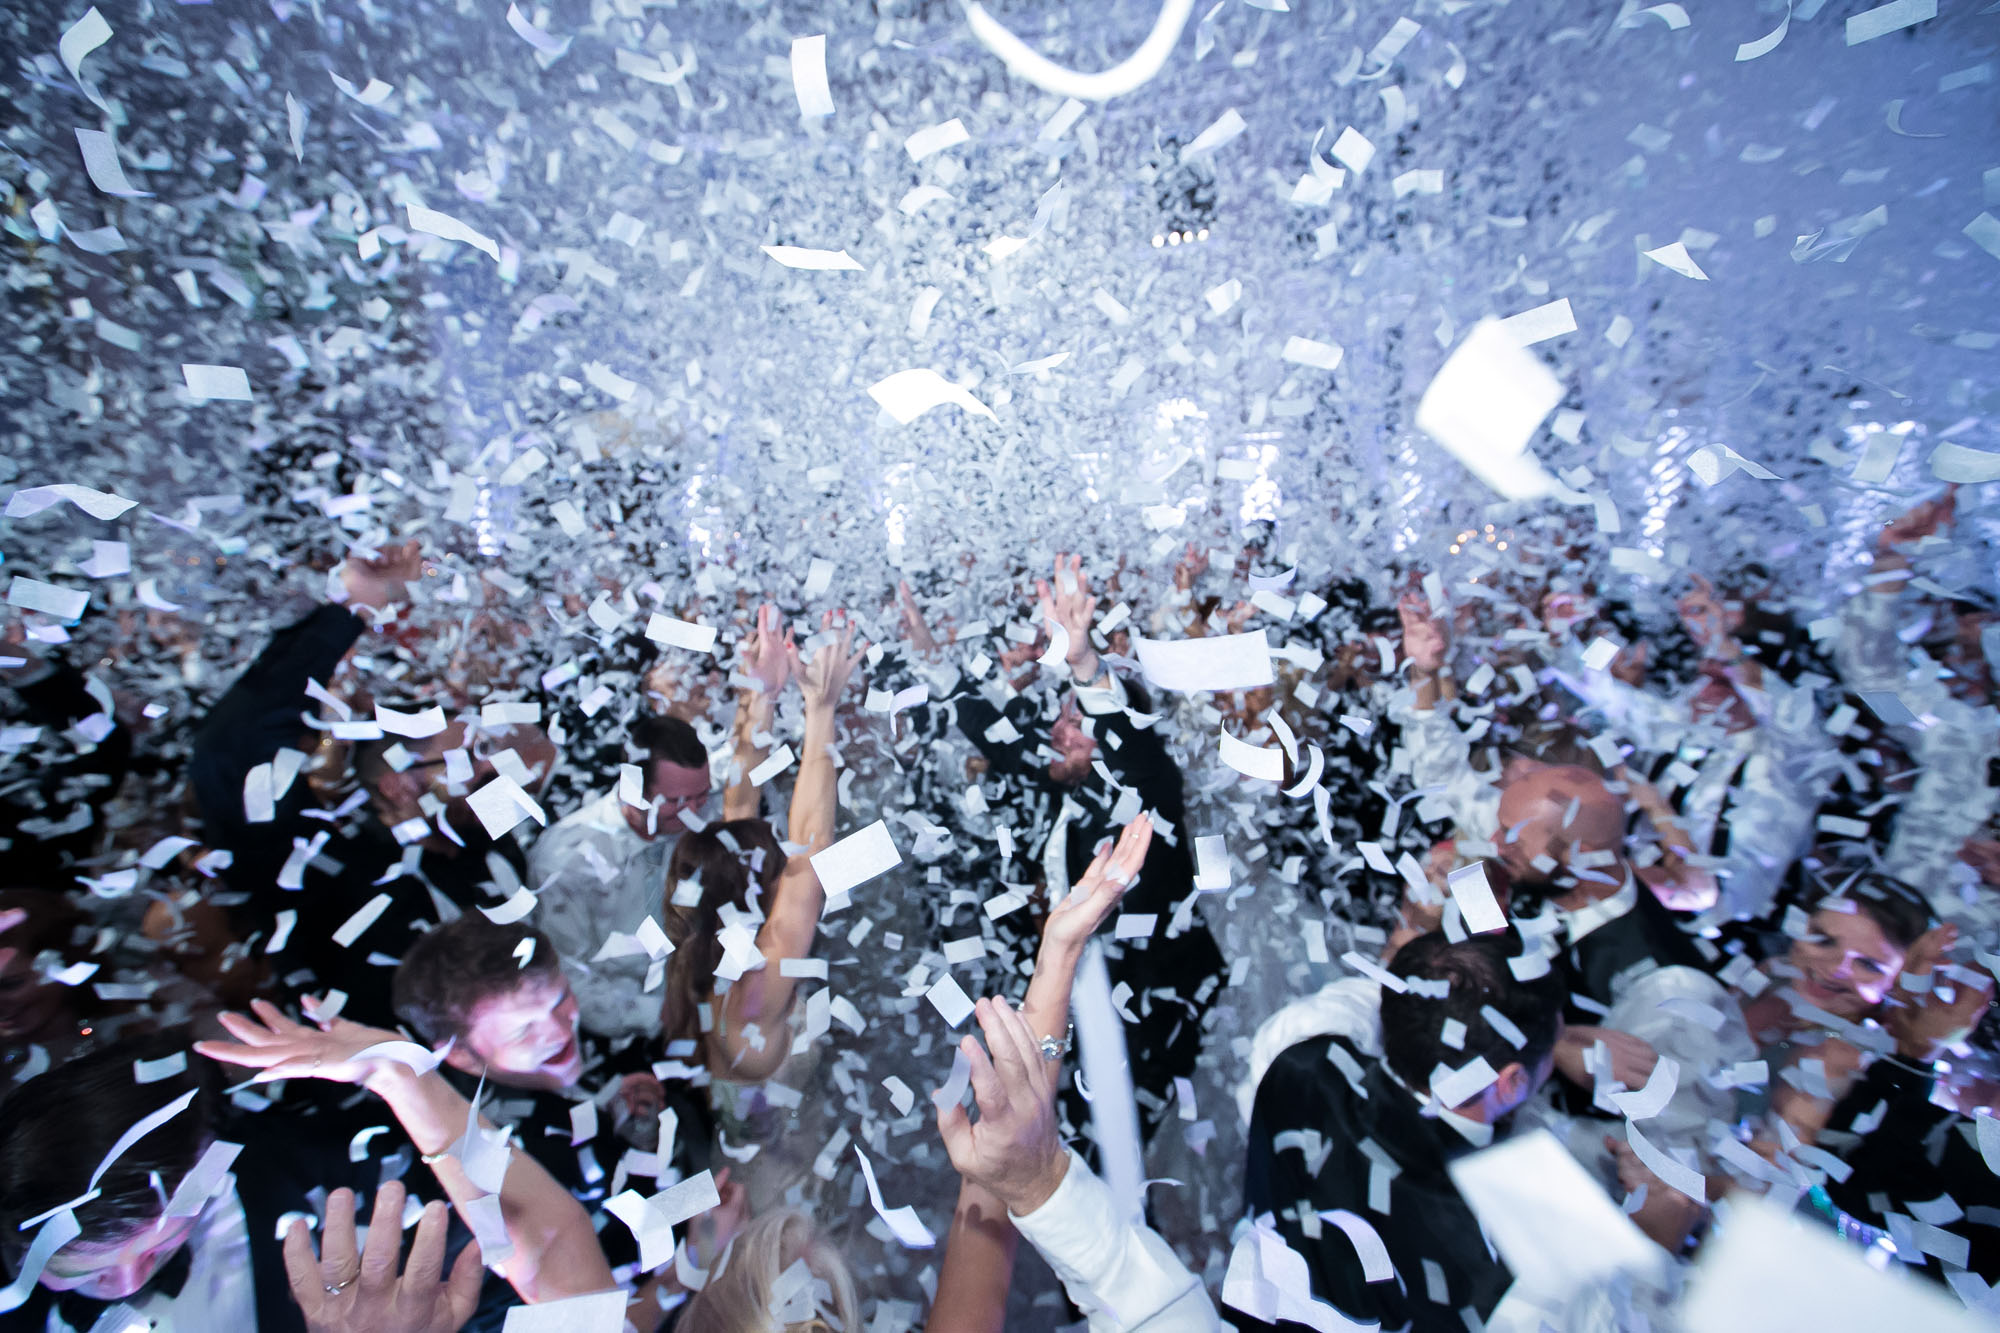 wedding with confetti falling over dance floor